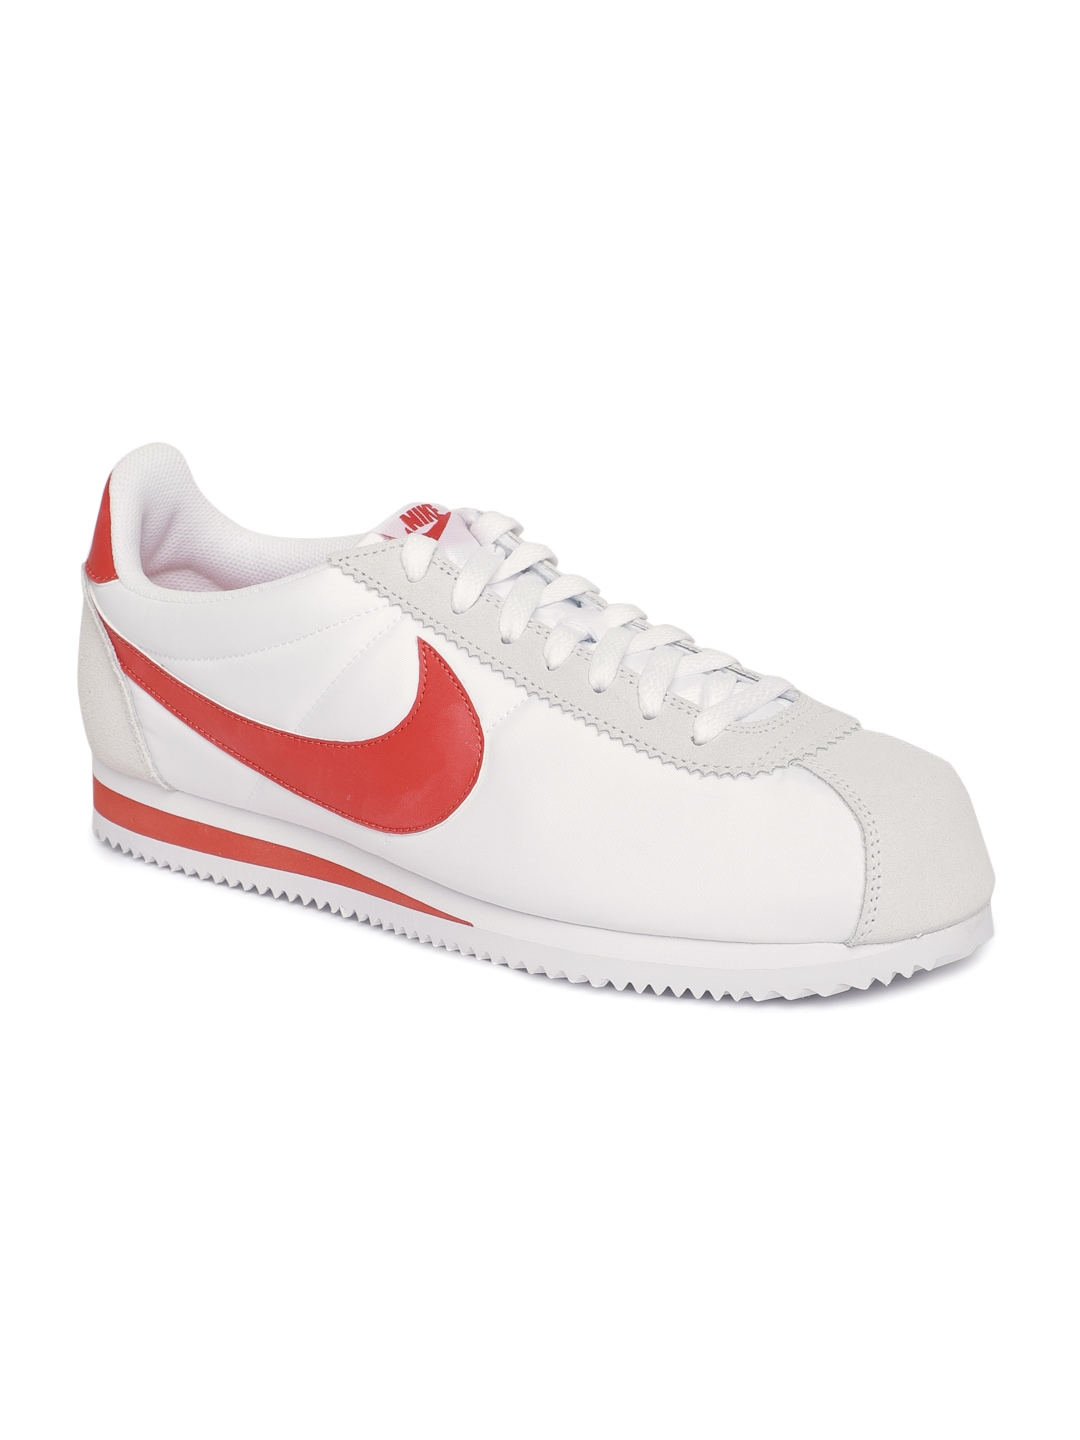 800c9502ba521c Nike Cortez Shoes - Buy Nike Cortez Shoes online in India